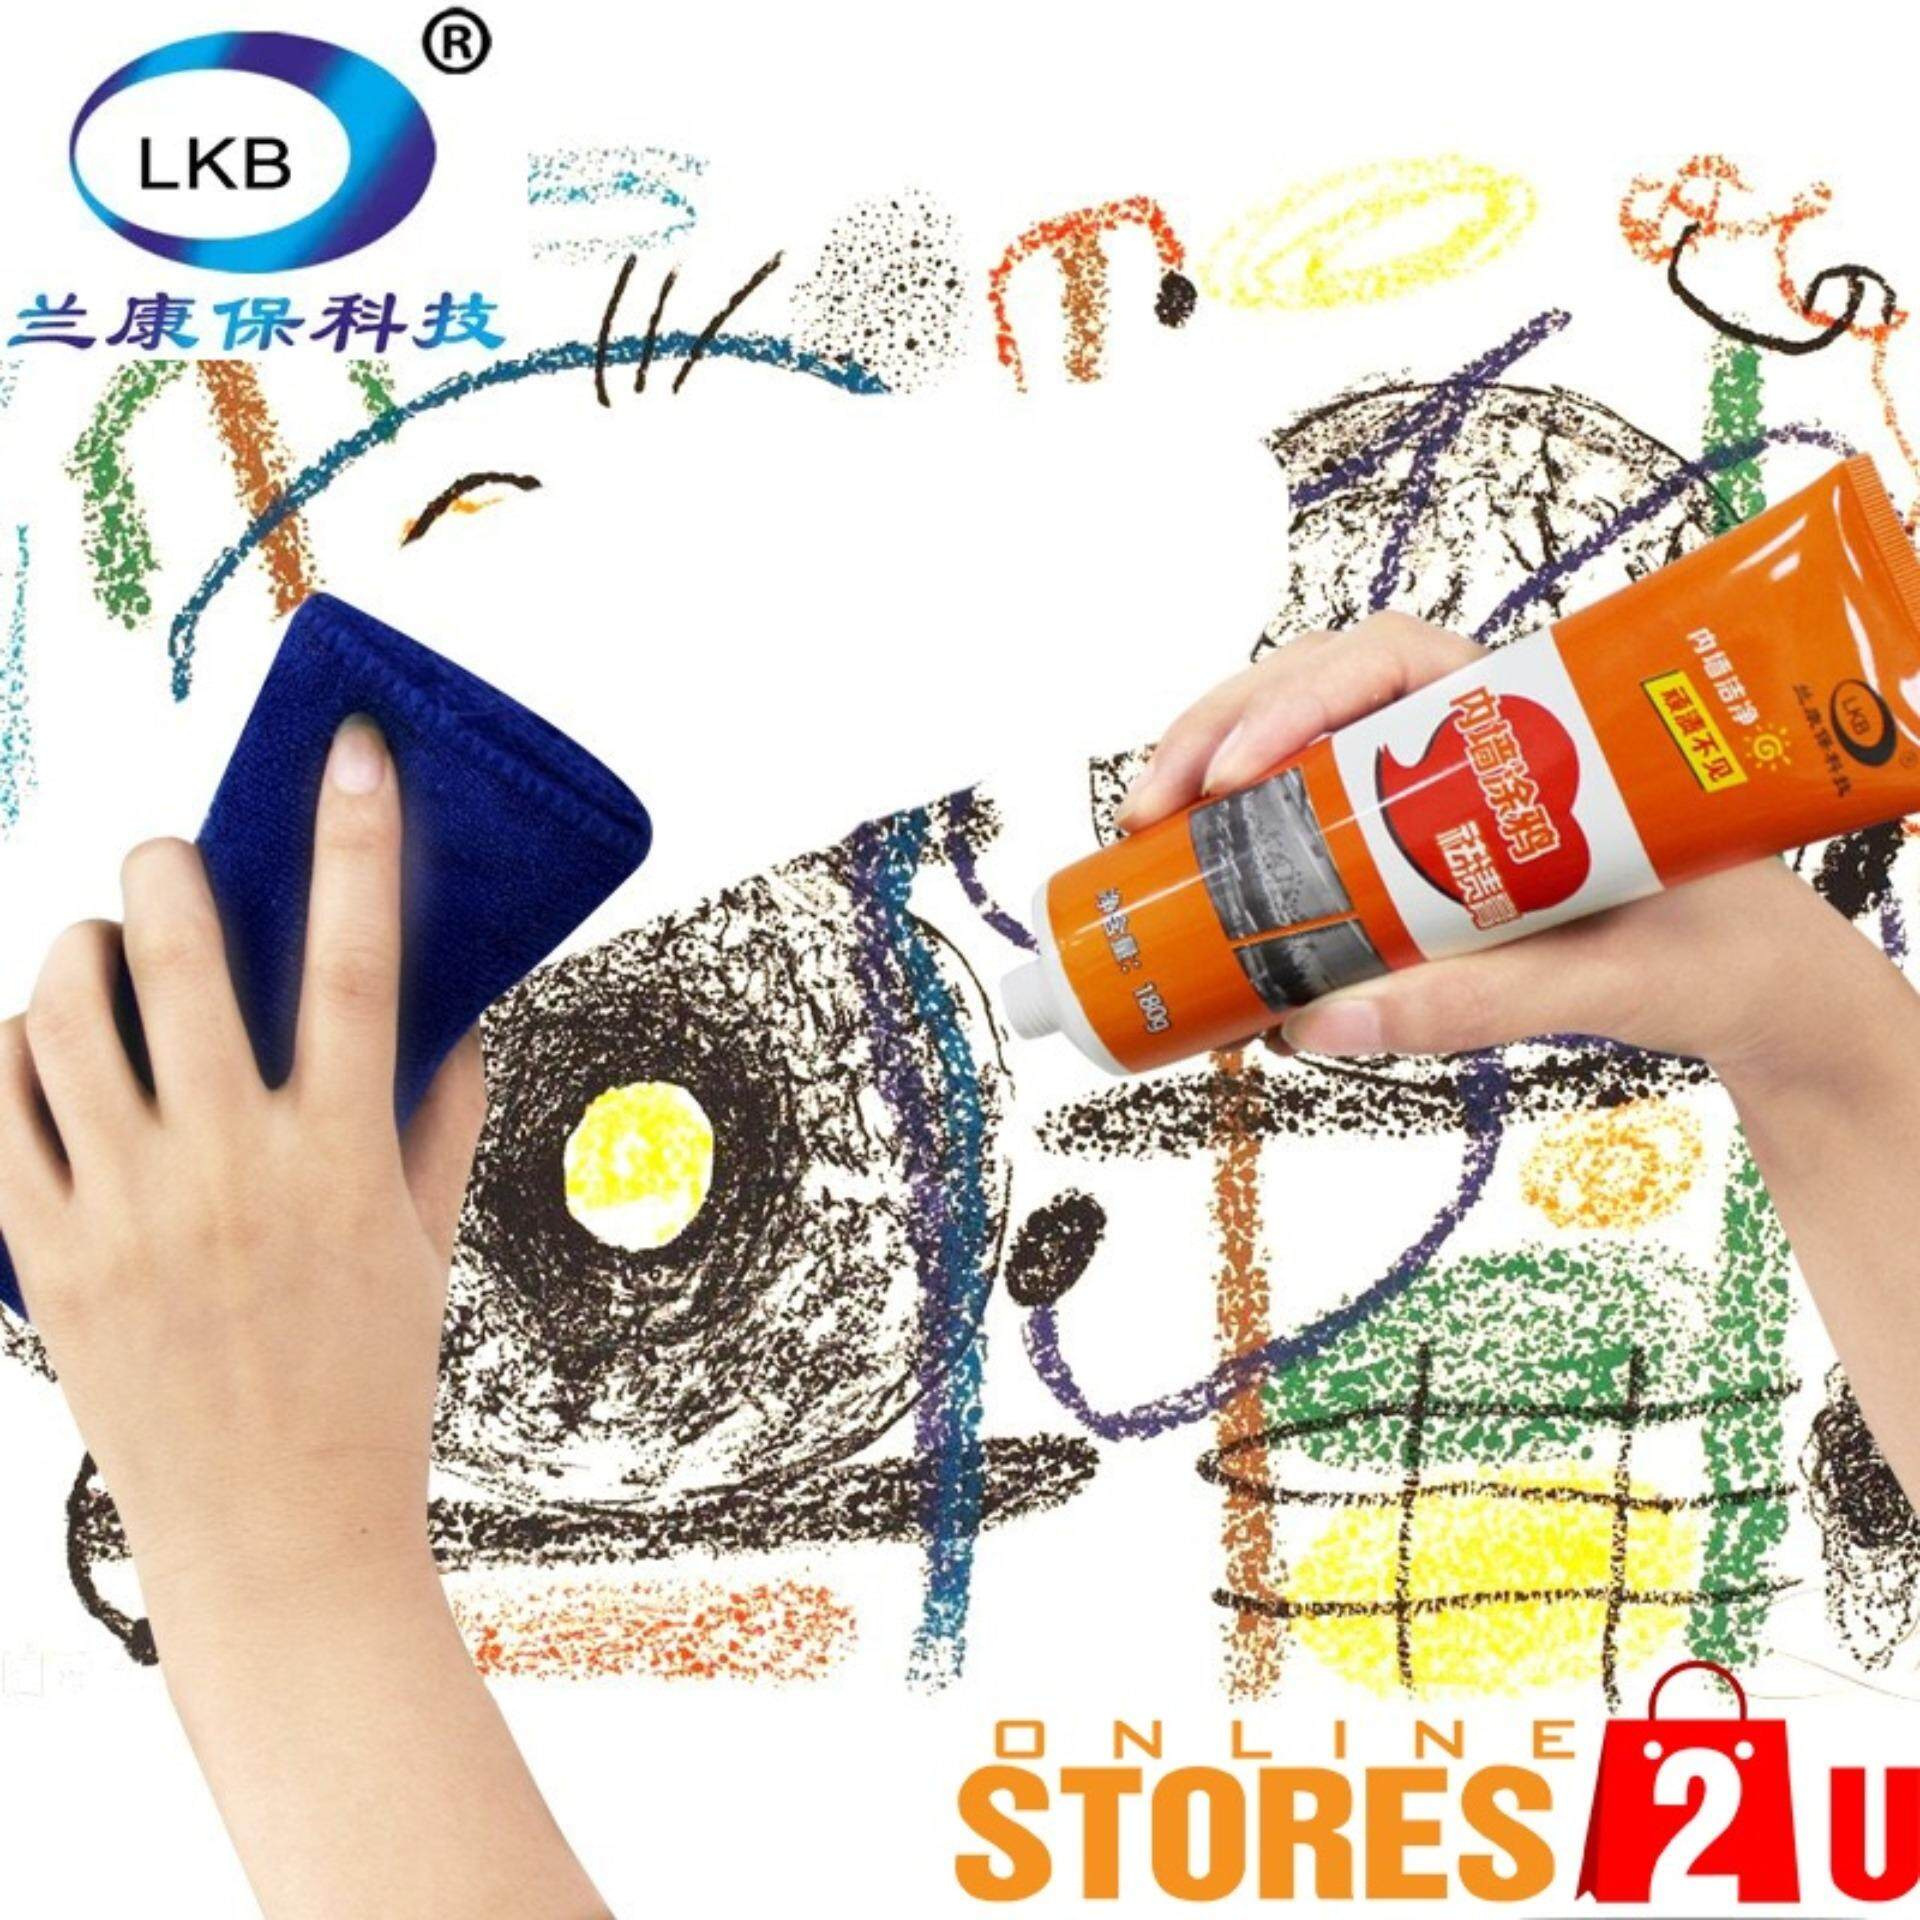 [Stores2u] LKB Inner Wall Stain Remover Cream To Remove Drawing Stain Mark(180g)